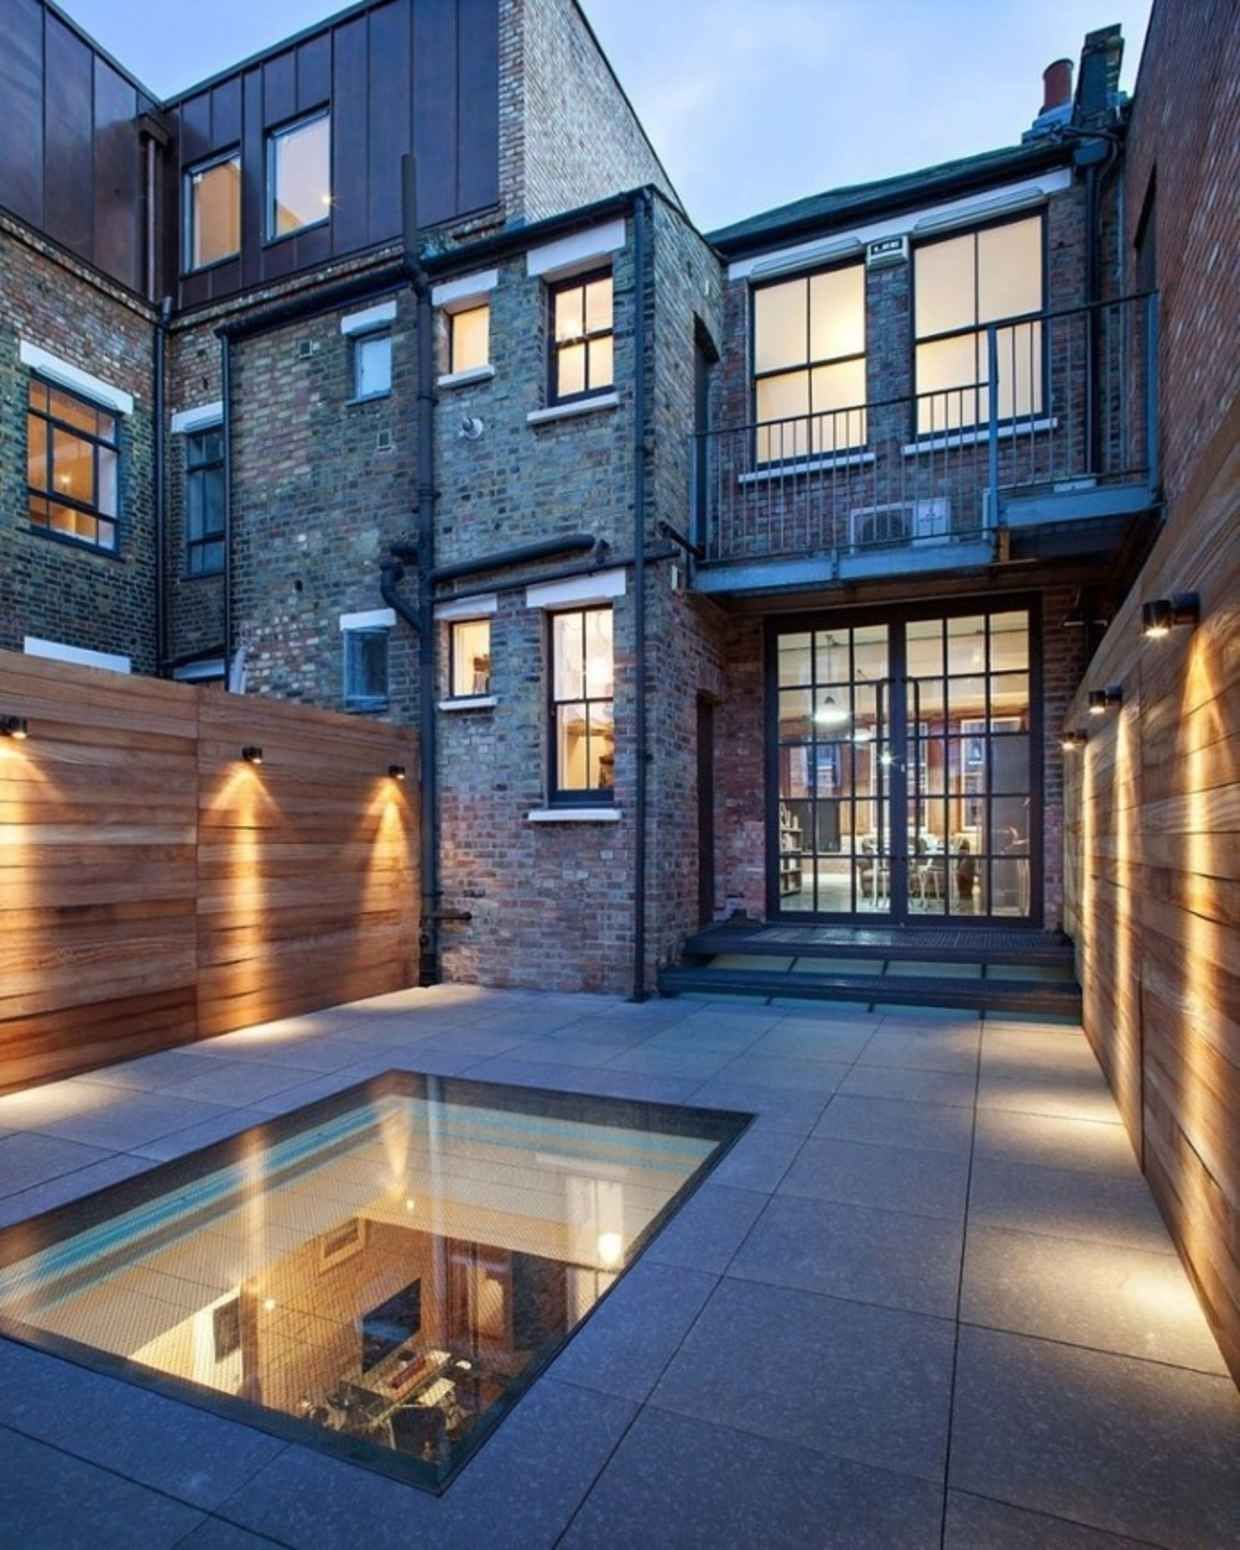 50 Examples Of Stunning Houses u0026 Architecture